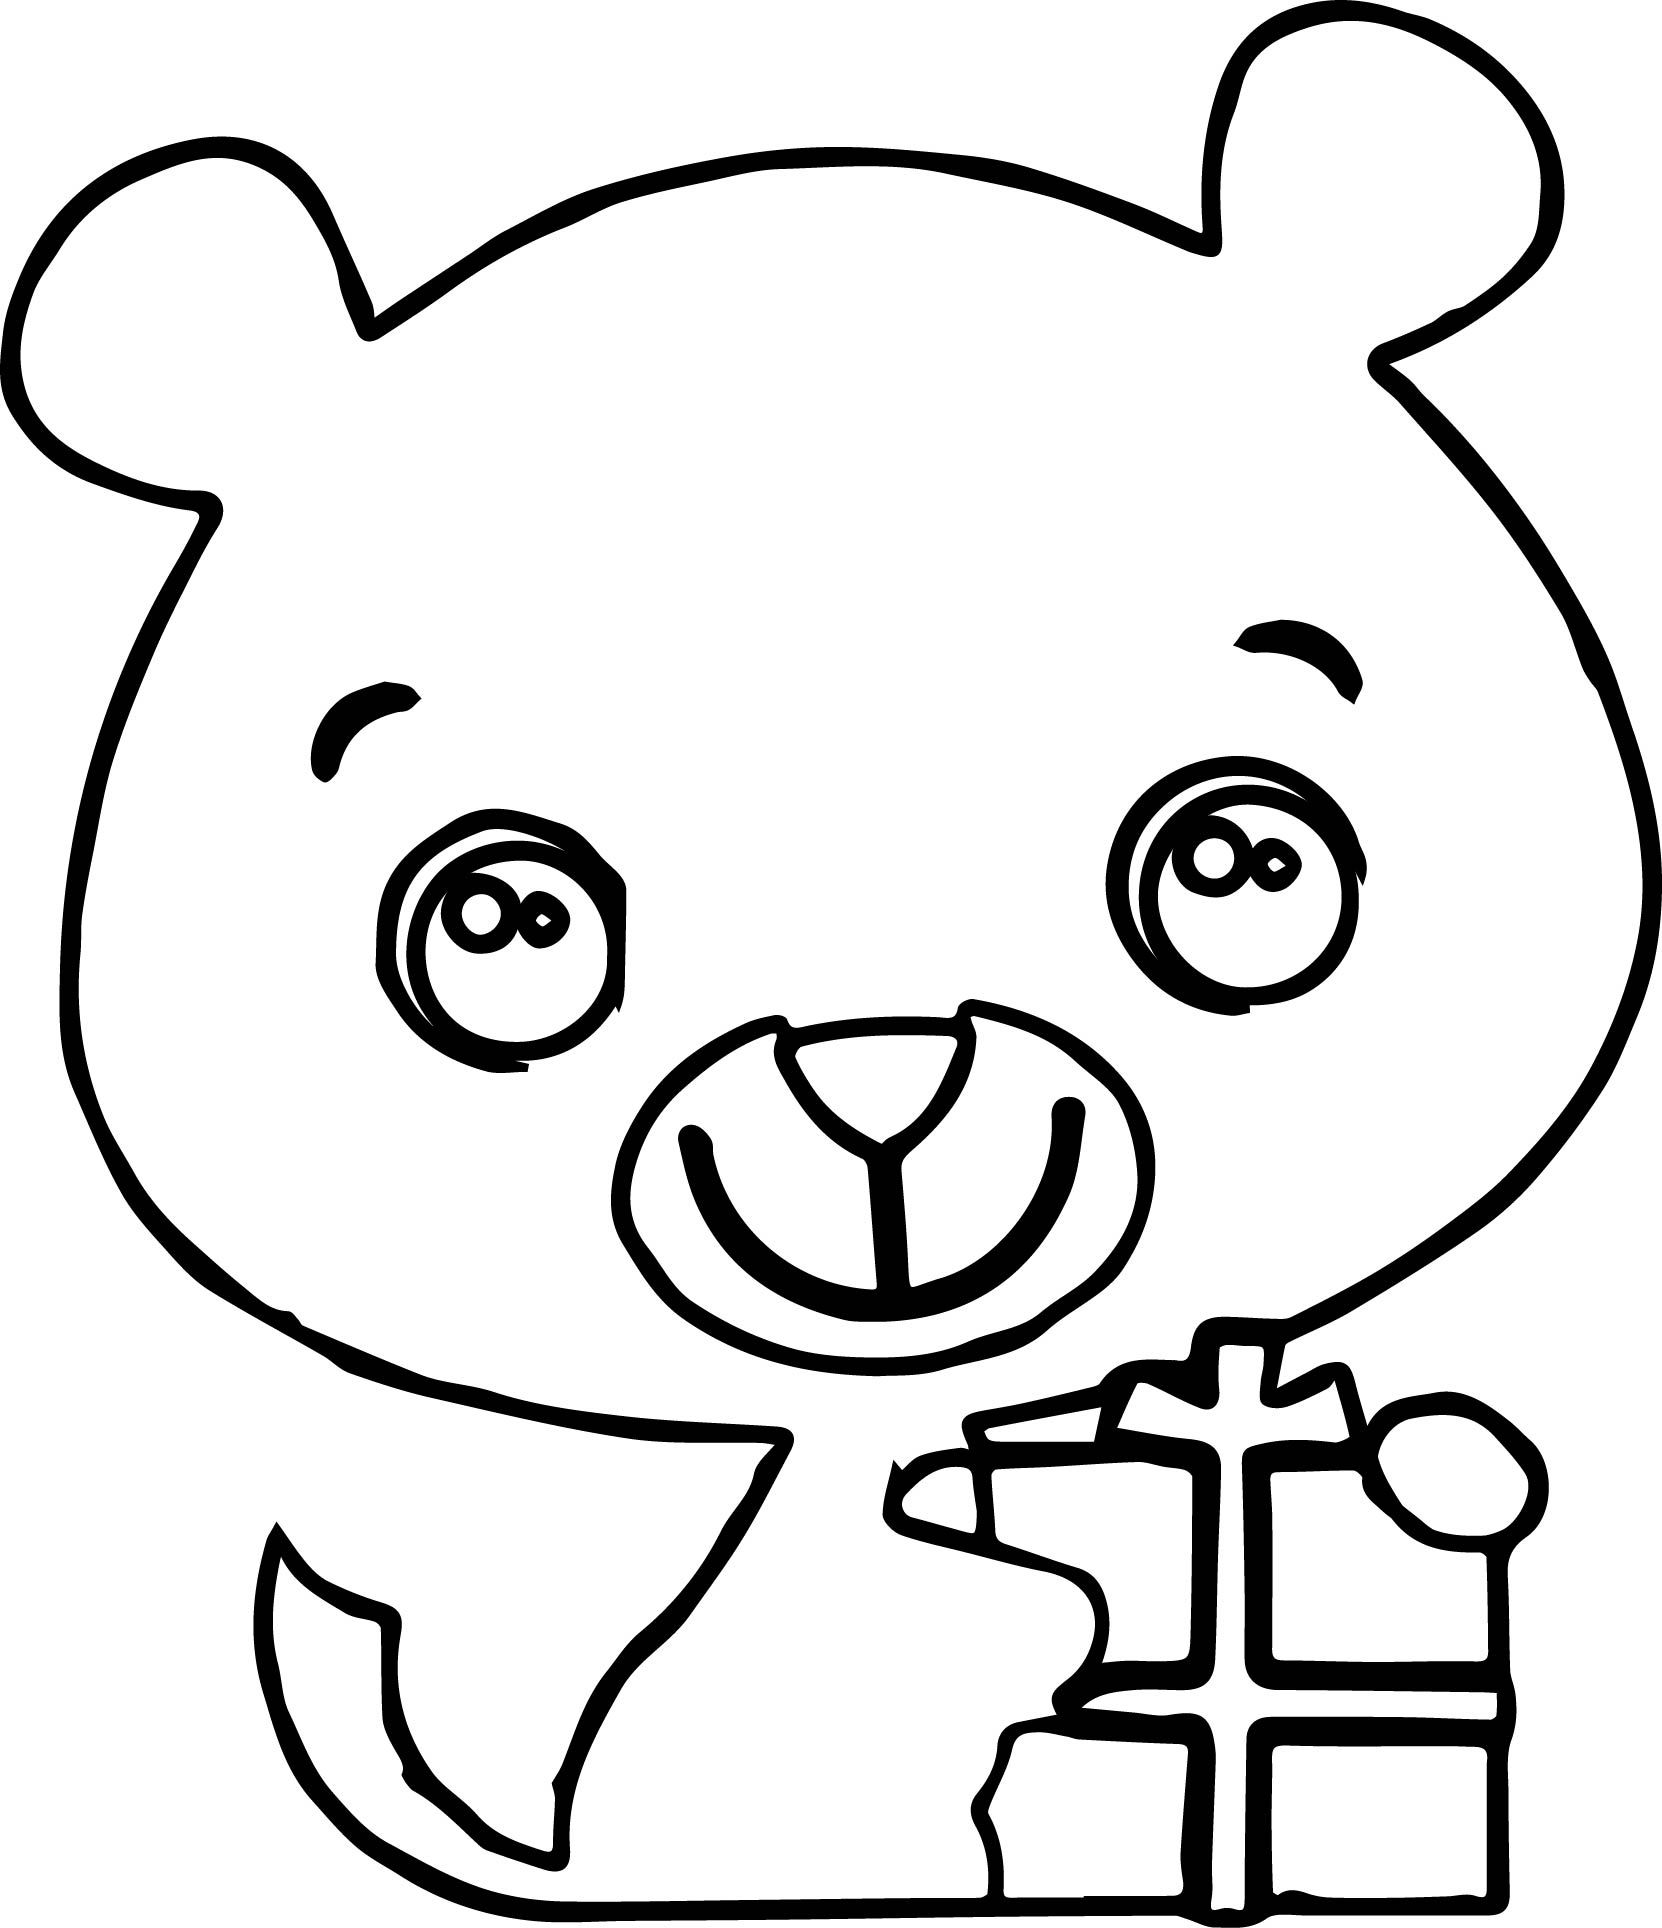 cool tiger coloring pages pin by coloring pages forkids on tiger coloring pages coloring cool pages tiger